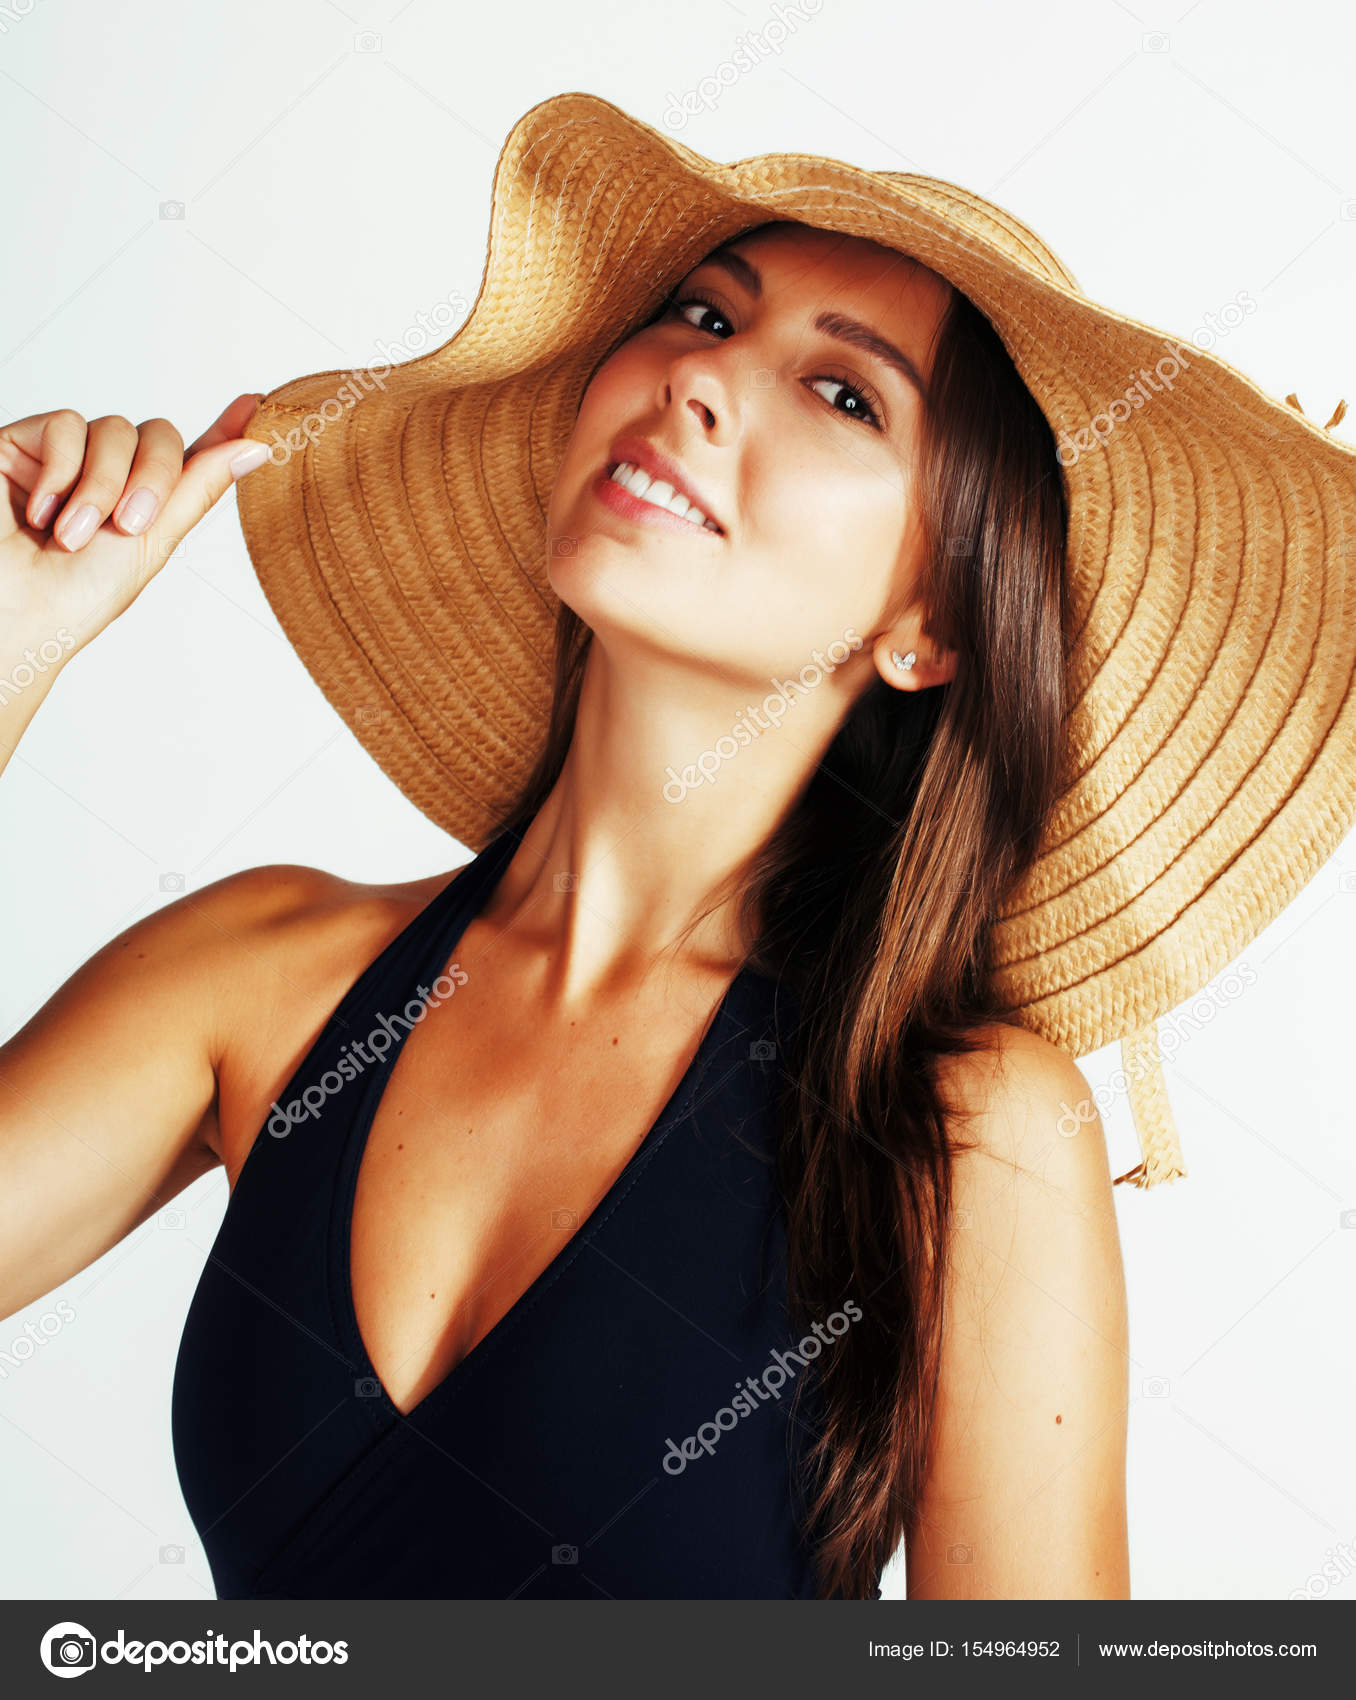 f592faac Young pretty brunette woman wearing summer hat and swimsuit isolated on  white background preparing to vacations, smiling emotional posing,  lifestyle concept ...